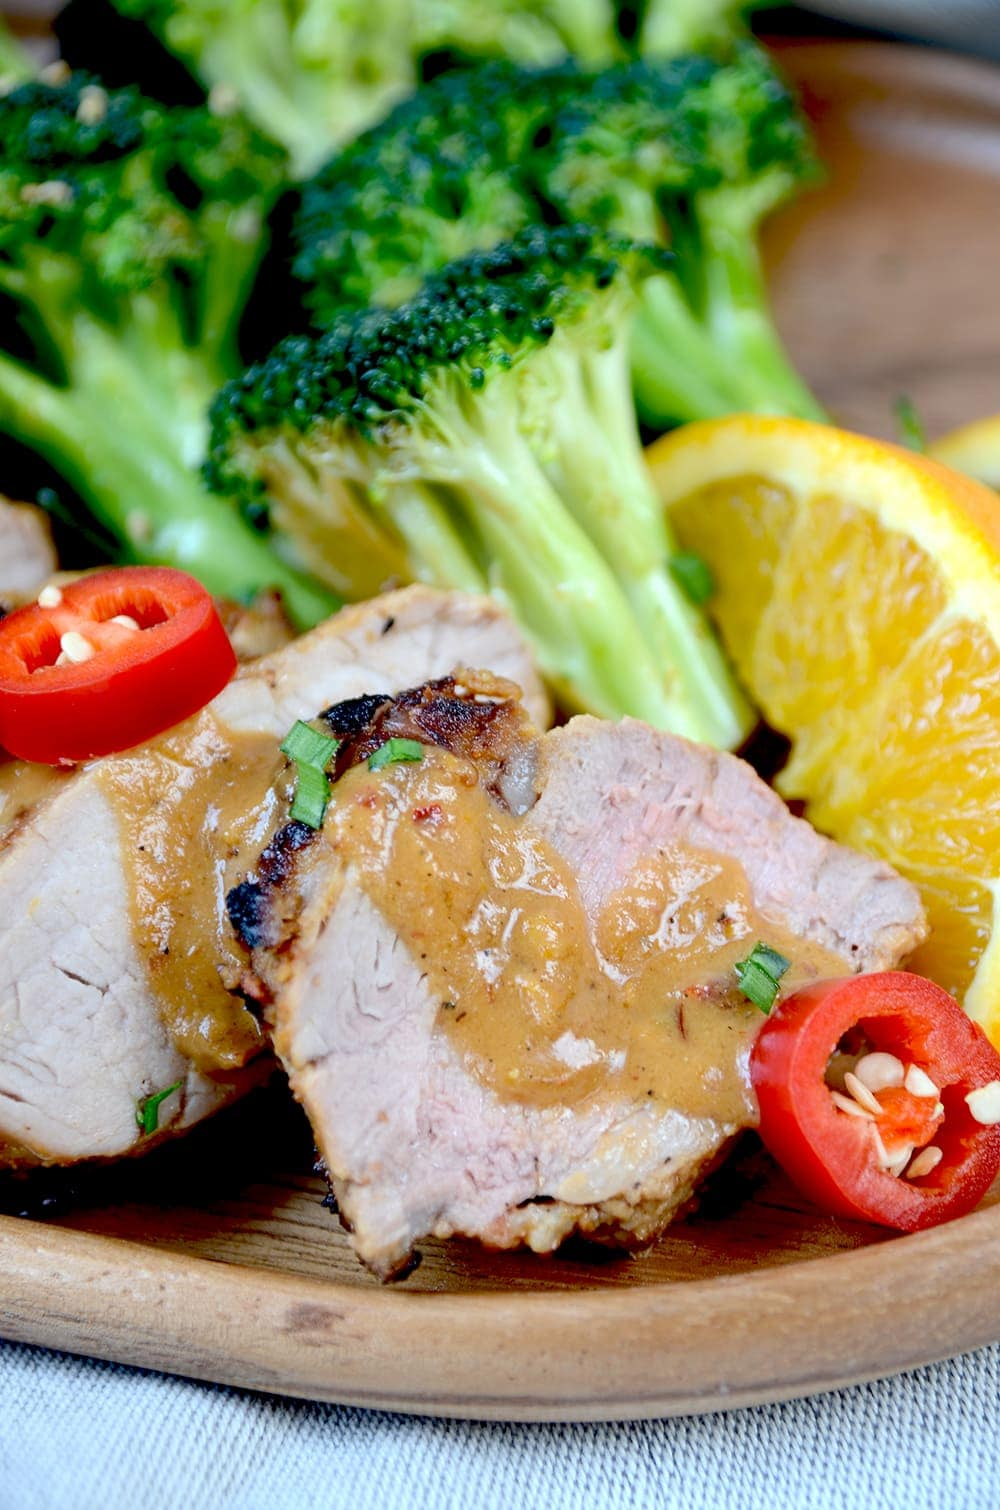 Asian Peanut Pork Tenderloin Vertical Web 2 - Asian Peanut Pork Tenderloin